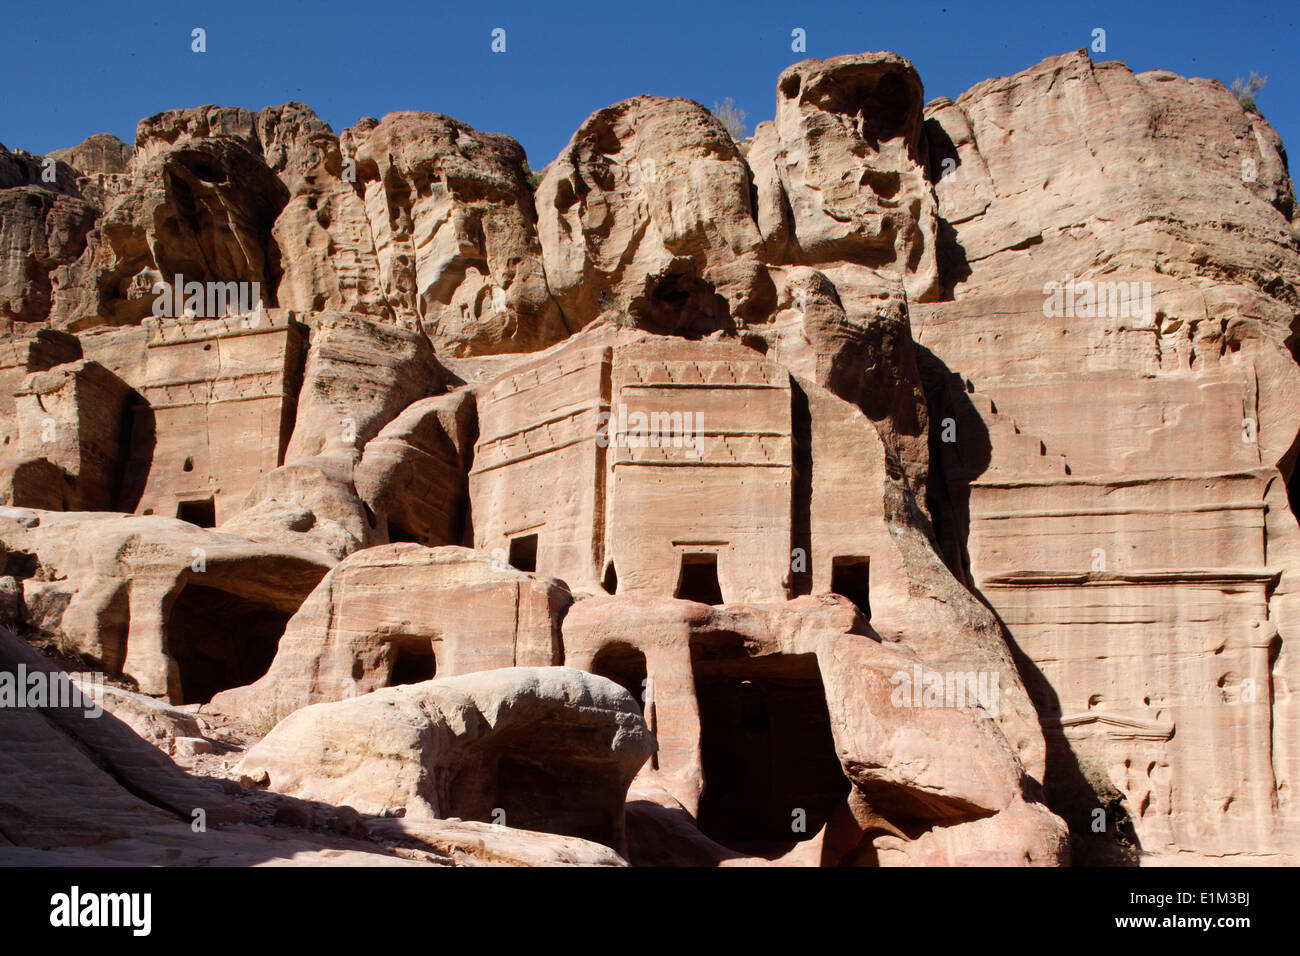 Image result for nabatean tombs